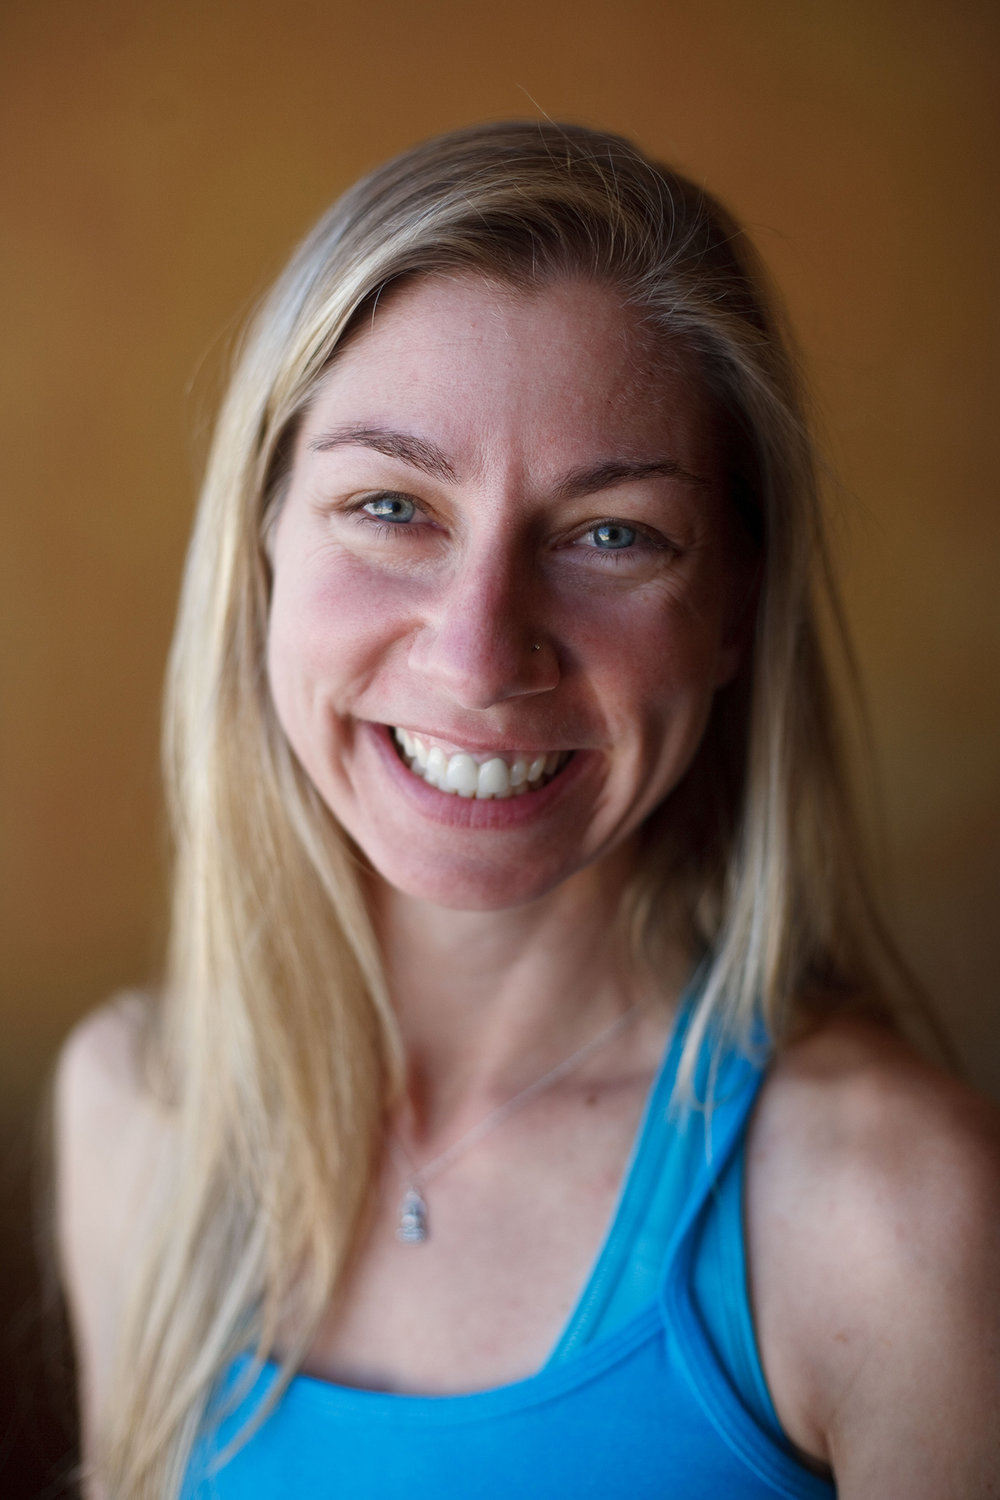 Samantha Akers - Samantha Akers began practicing yoga in 2000, after being diagnosed with Chronic Fatigue and Fibromyalgia. She credits Restorative Yoga and meditation, to her healing. She began teaching yoga in 2002, receiving her first certification in Hatha and Kundalini with Karuna Yoga in Los Angeles. She went on to graduate from her 500 hour program in 2009. She then became increasingly interested in the Therapeutic Style of Iyengar Yoga and studied Therapeutics with Judith Lasater, Leeann Carey and Russ Pfeiffer. Samantha is also a massage therapist, specializing in combining mindfulness with bodywork, earning her certification from one of the only 1000 hour programs in Los Angeles, in 2009.She is a certified yoga therapist (C-IAYT) and sees over 50 private students a month, mixing modalities of yoga, meditation and bodywork.She began studying mediation with Pema Chodron in 2000. Her current teachers are Shinzen Young and George Haas at Against the Stream in LA.In 2012, she opened TheraYoga Studio in Los Angeles, bringing the TheraYoga Method (TM) to the community and now teaches regular weekly classes at Om Shala Yoga in Arcata, CA.